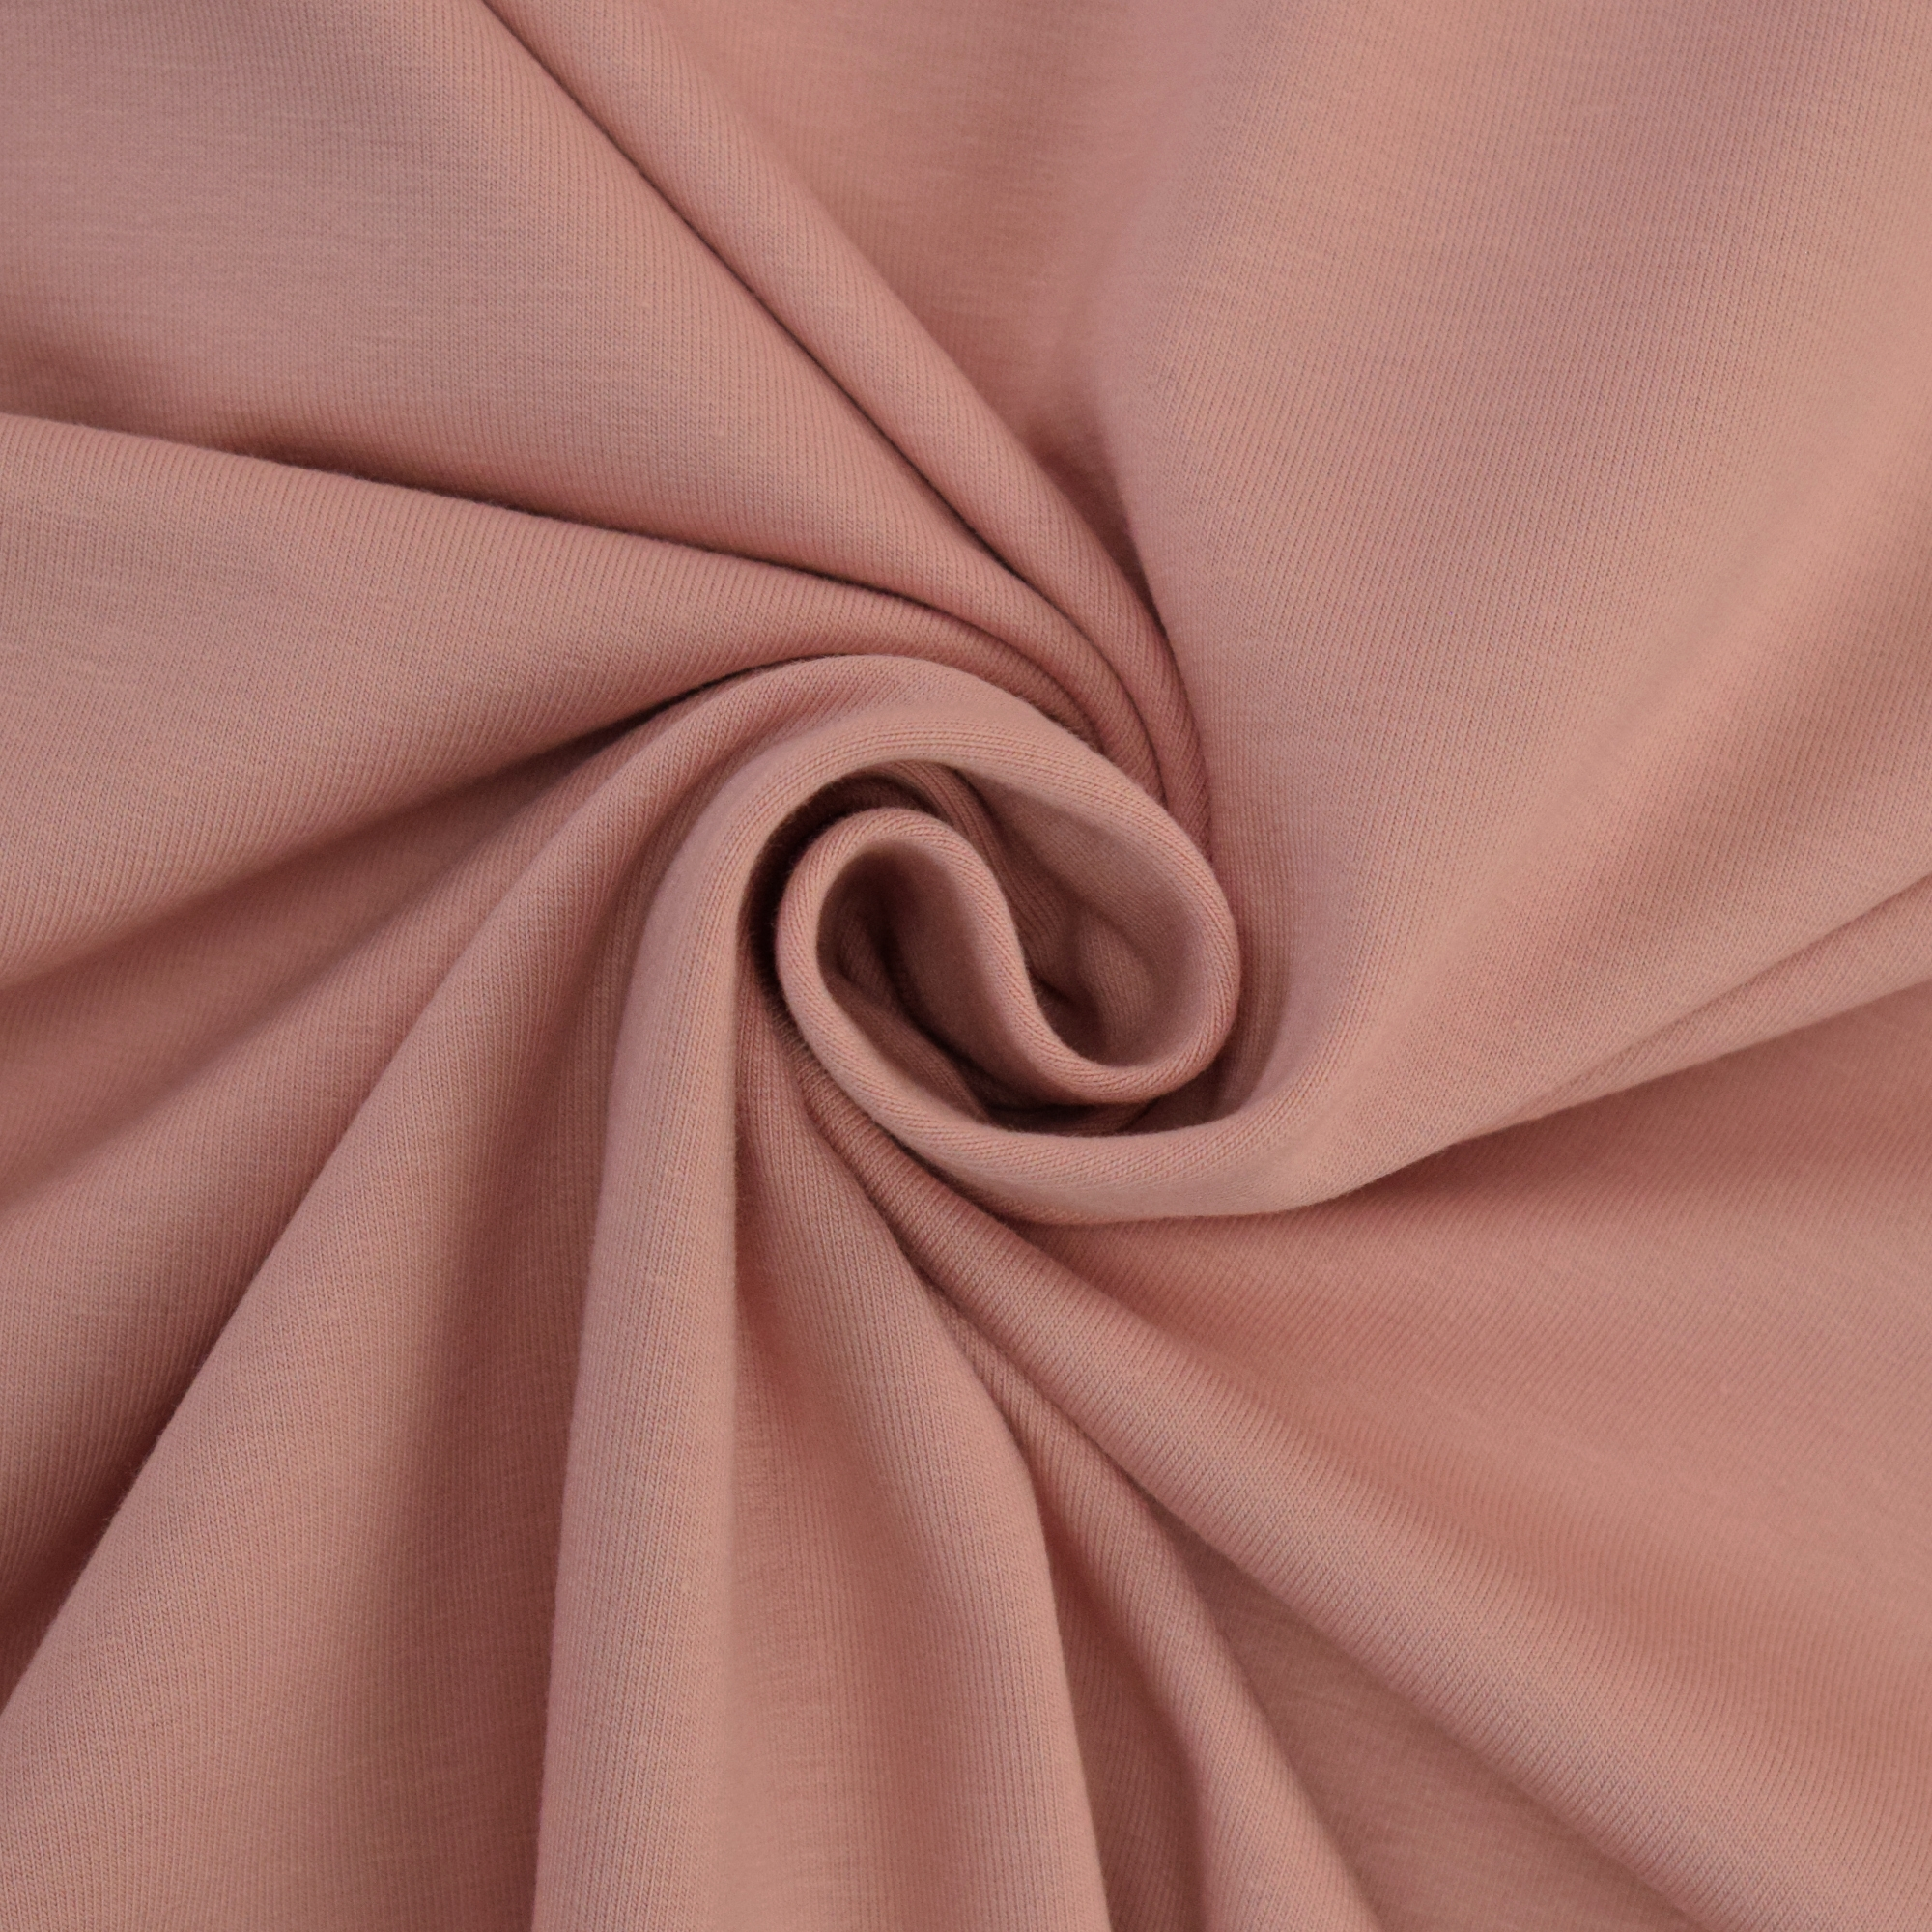 Cotton jersey plain, pale rosé | 124.554-3478 | rosa